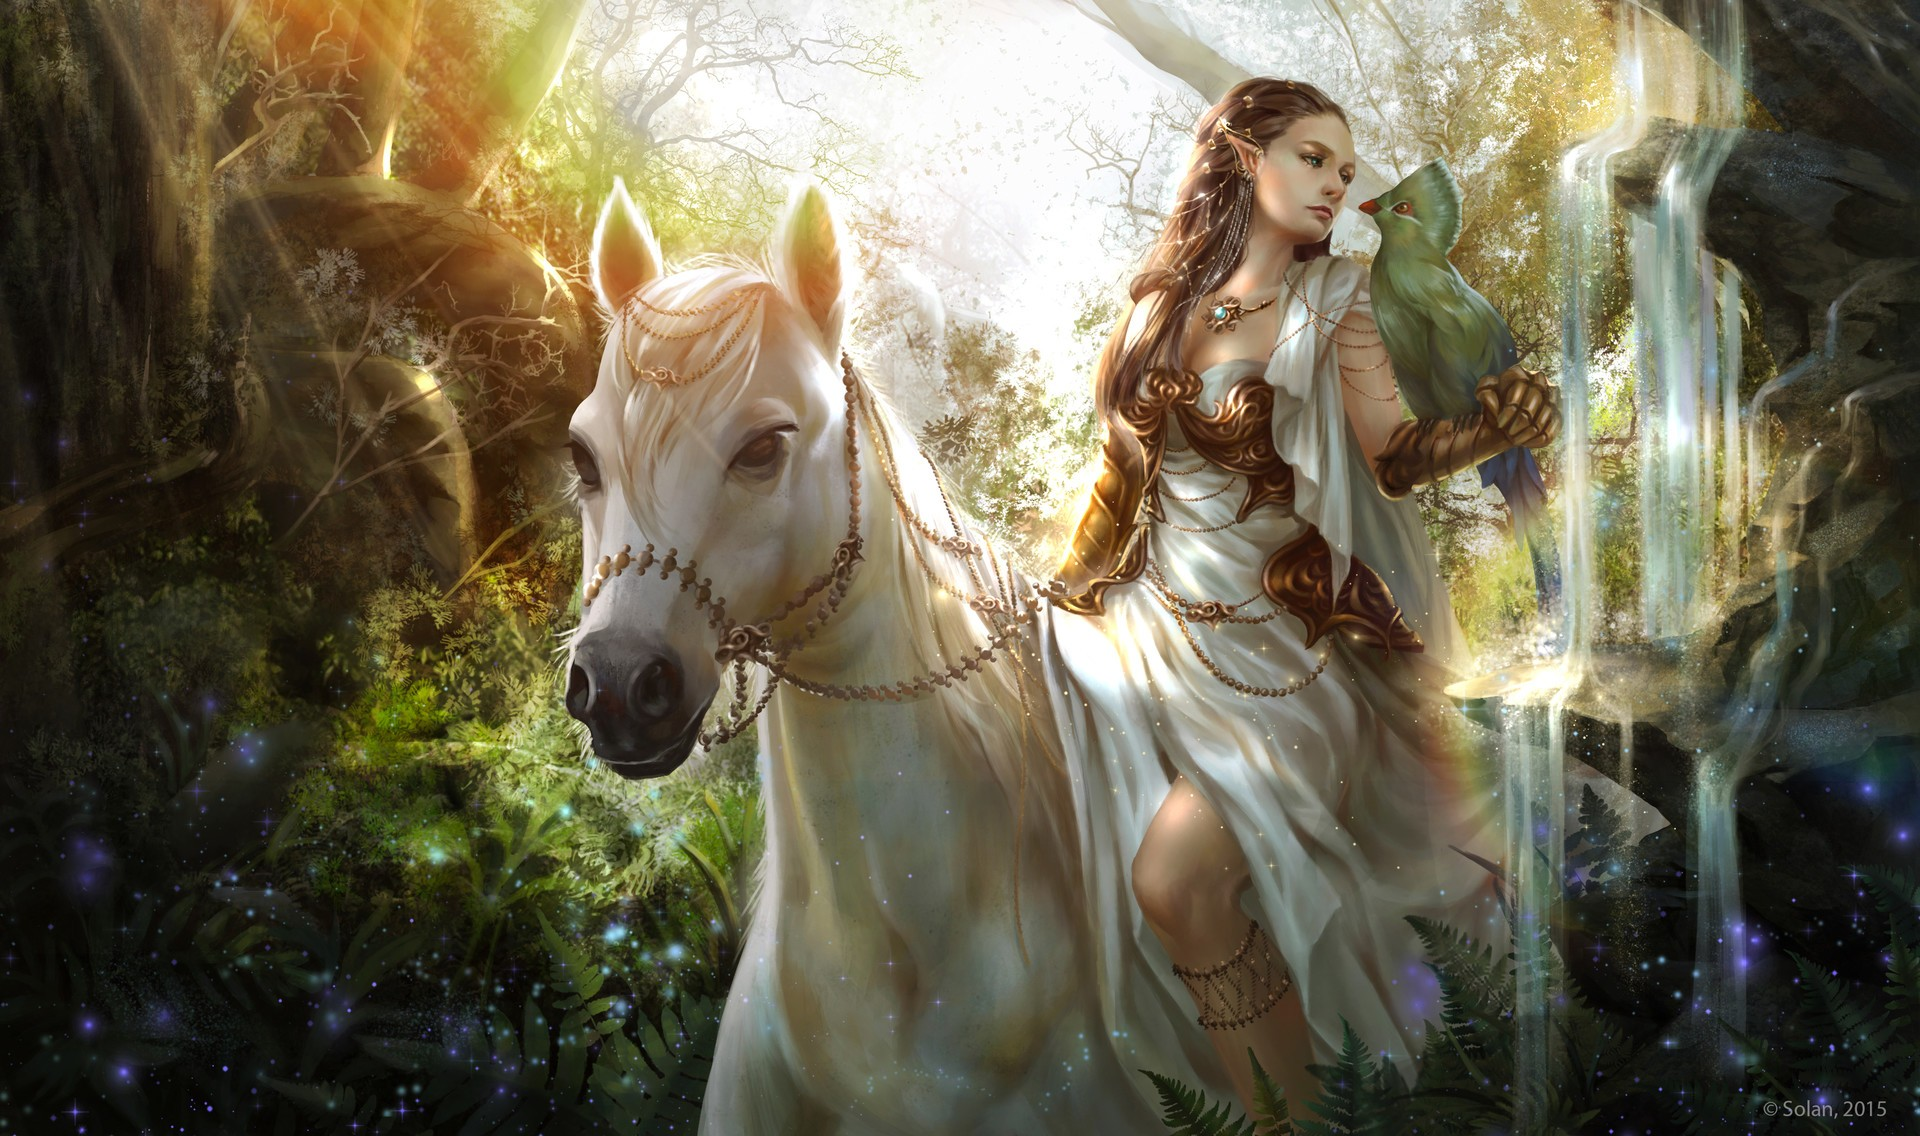 Fantasy - Women  Fantasy Pointed Ears Woman Girl Horse Bird Wallpaper